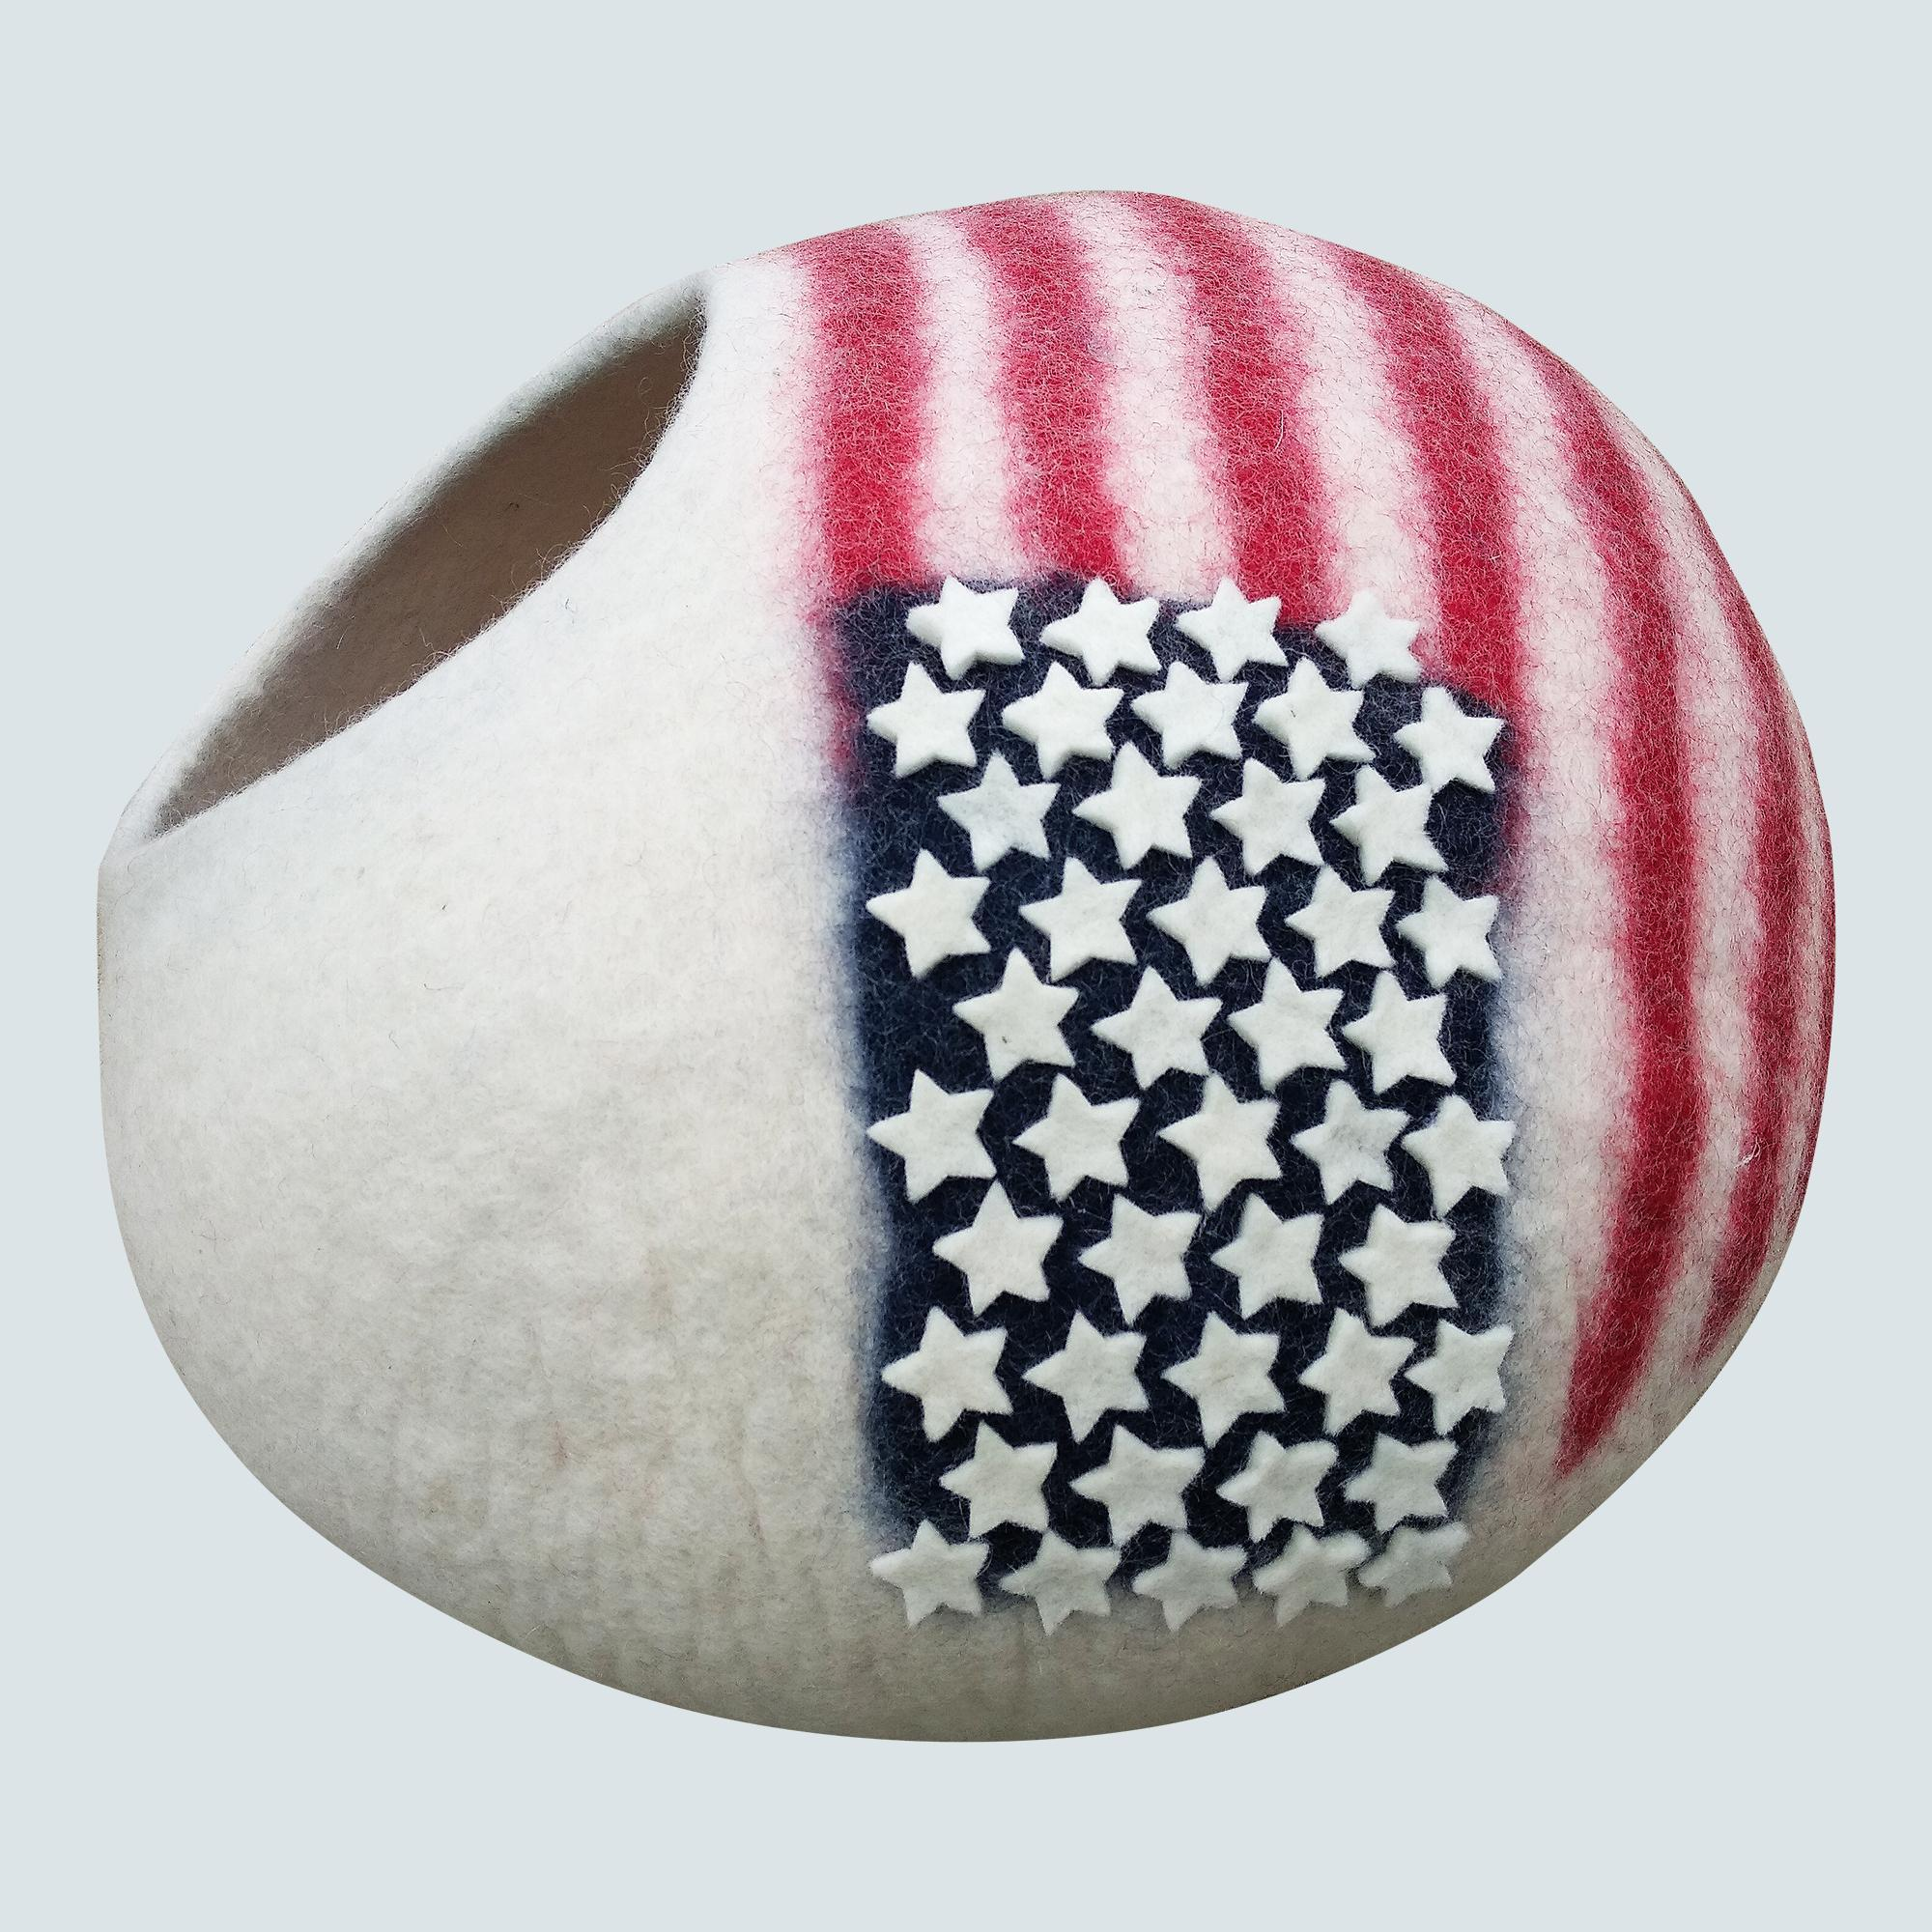 Premium Felt Cat Bed Cave (Mediumto Large ) - Handmade 100% Merino Wool Bed for Cats and Kittens- American flag design